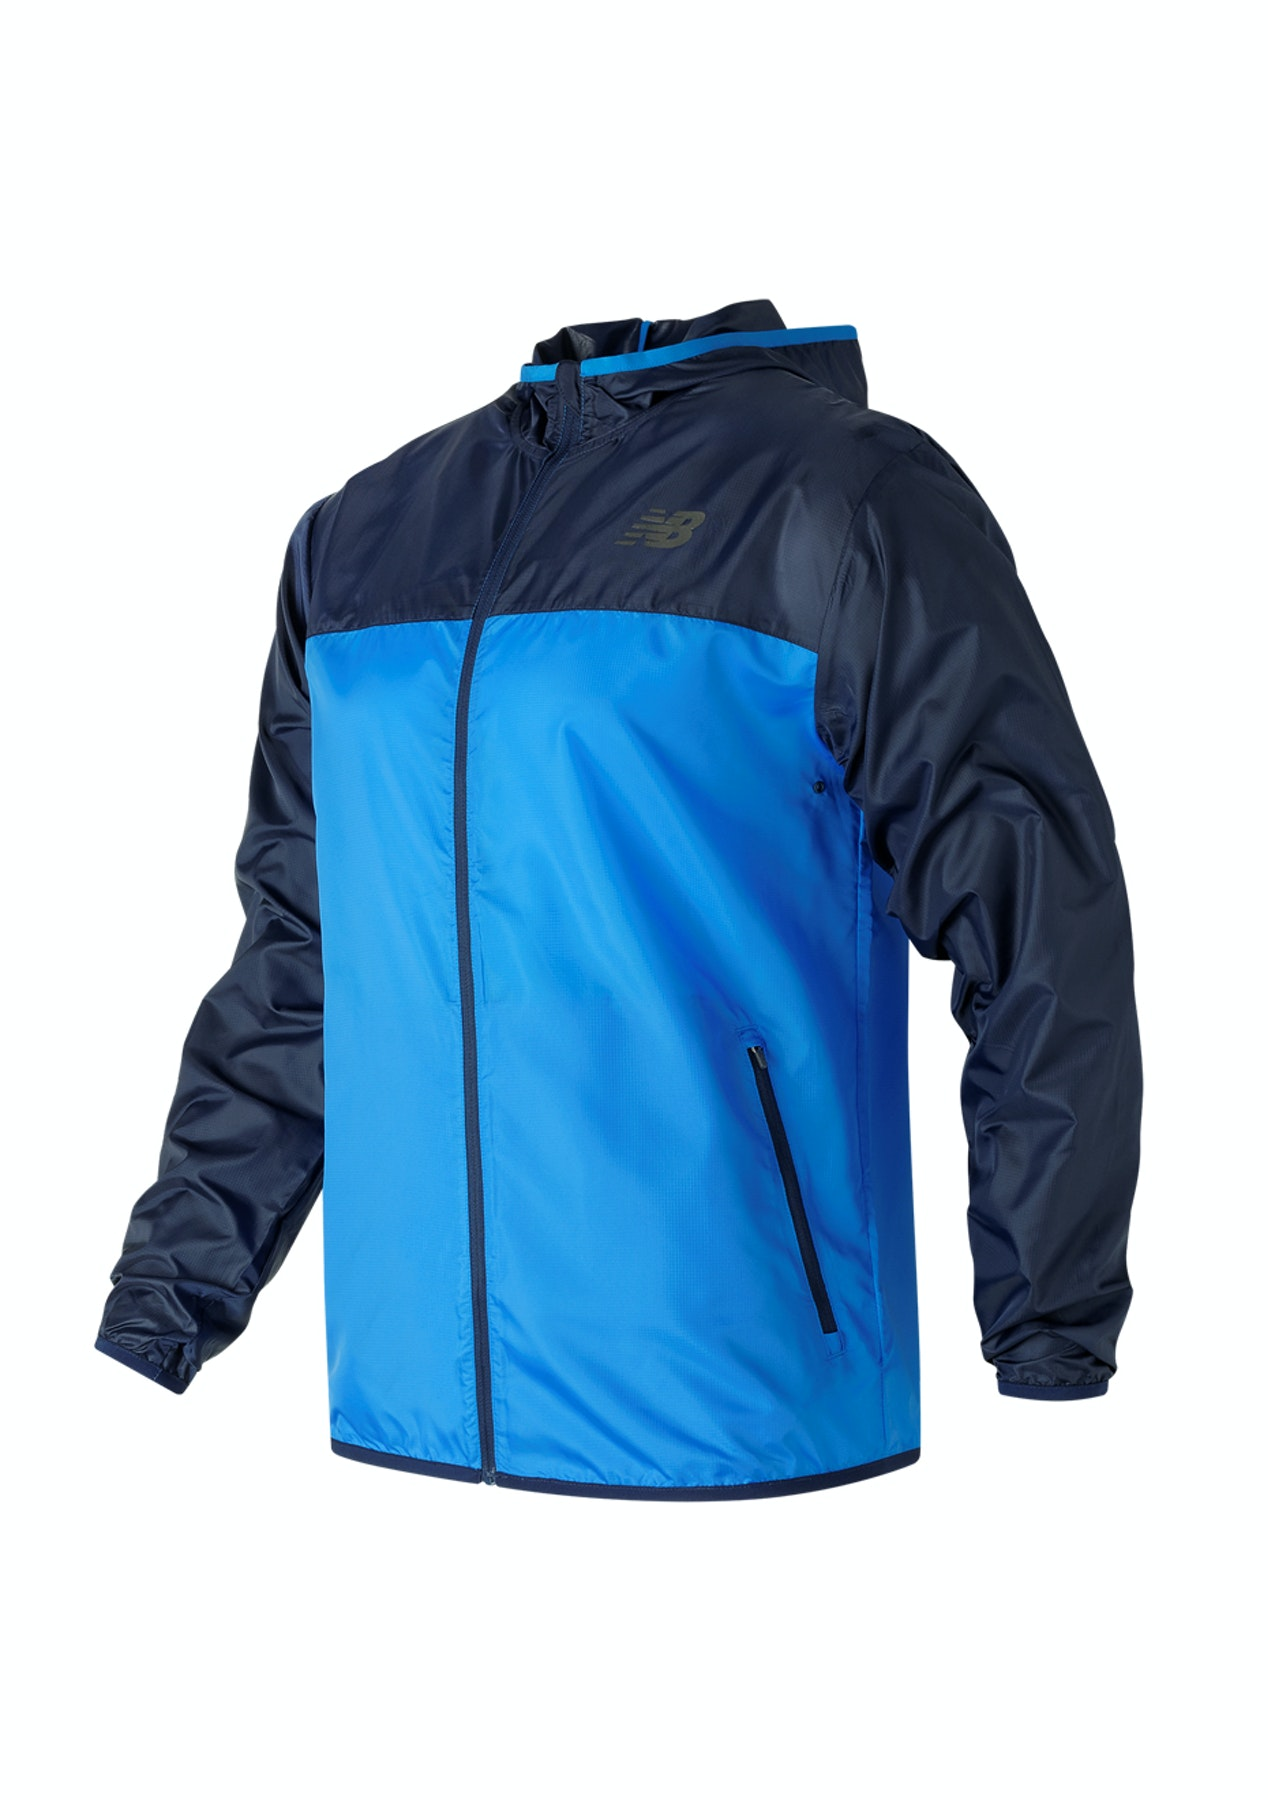 7b03df2796dba New Balance Mens - Windcheater Jacket - Electric Blue - Boxing Day Mens -  Onceit